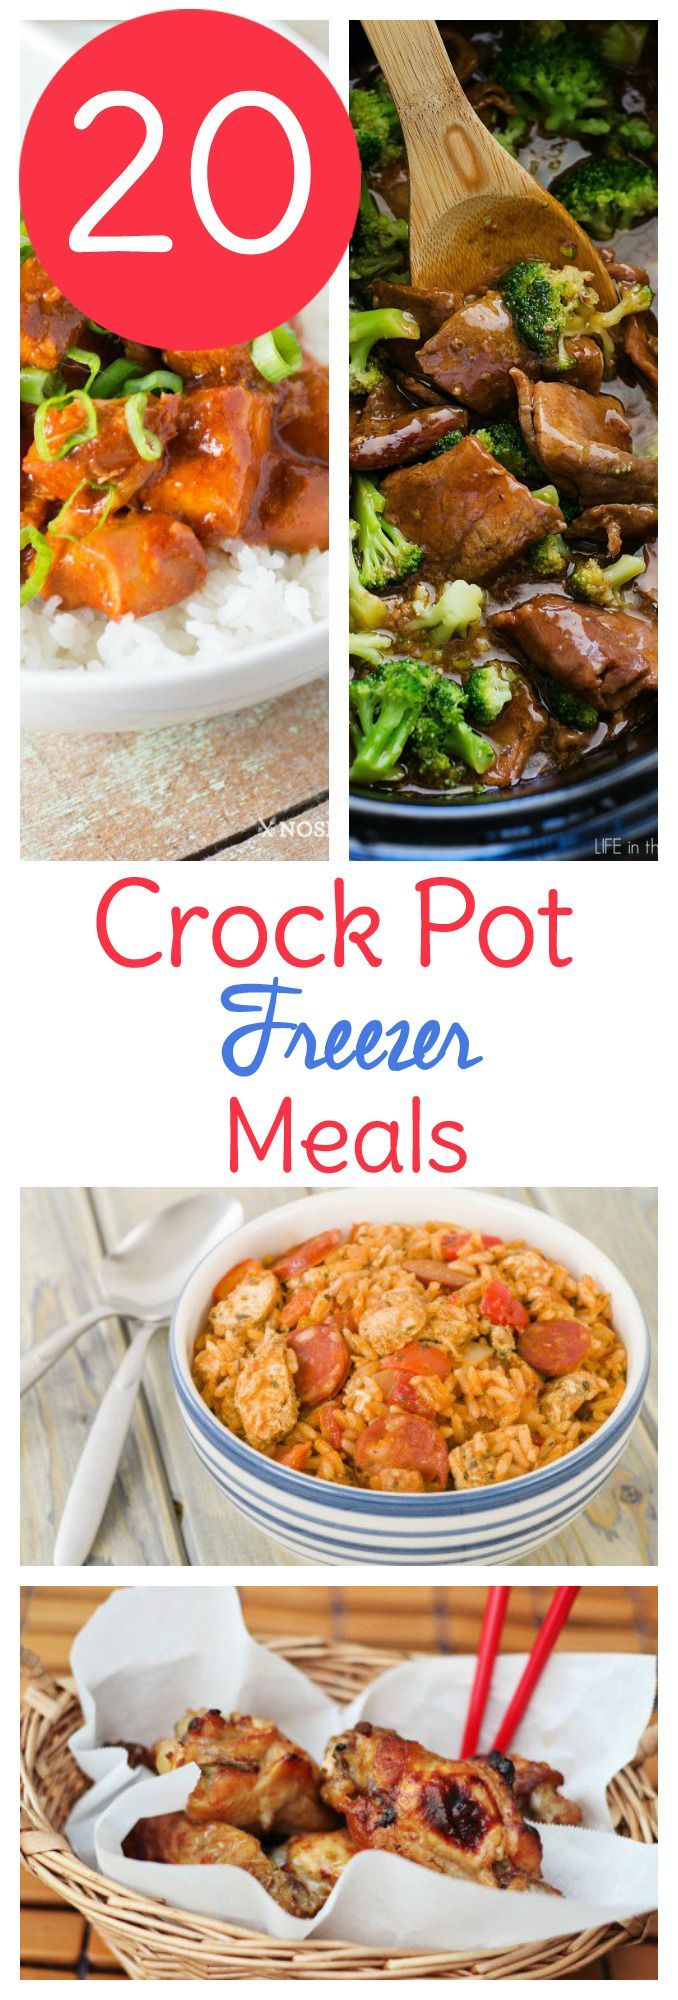 10 Easy Crock-Pot Freezer Meals. One of the best ways that I know how to save both time and money is to spend a day prepping meals ahead of time and stashing them away in my freezer for those crazy busy days when I know that I am not going to have time to plan, shop and cook dinner.